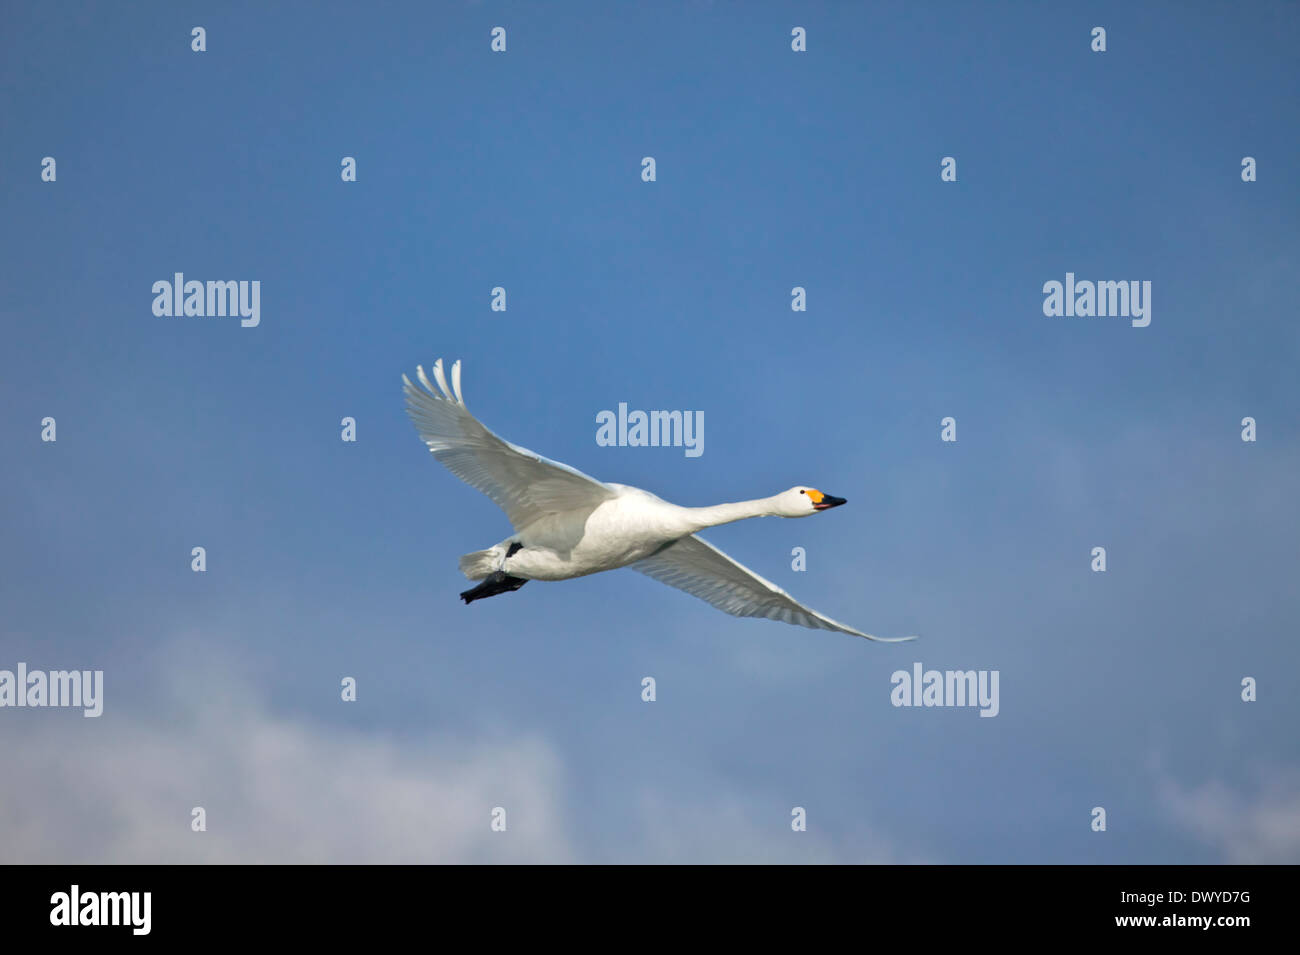 Birds Flying in the Sky - Stock Image